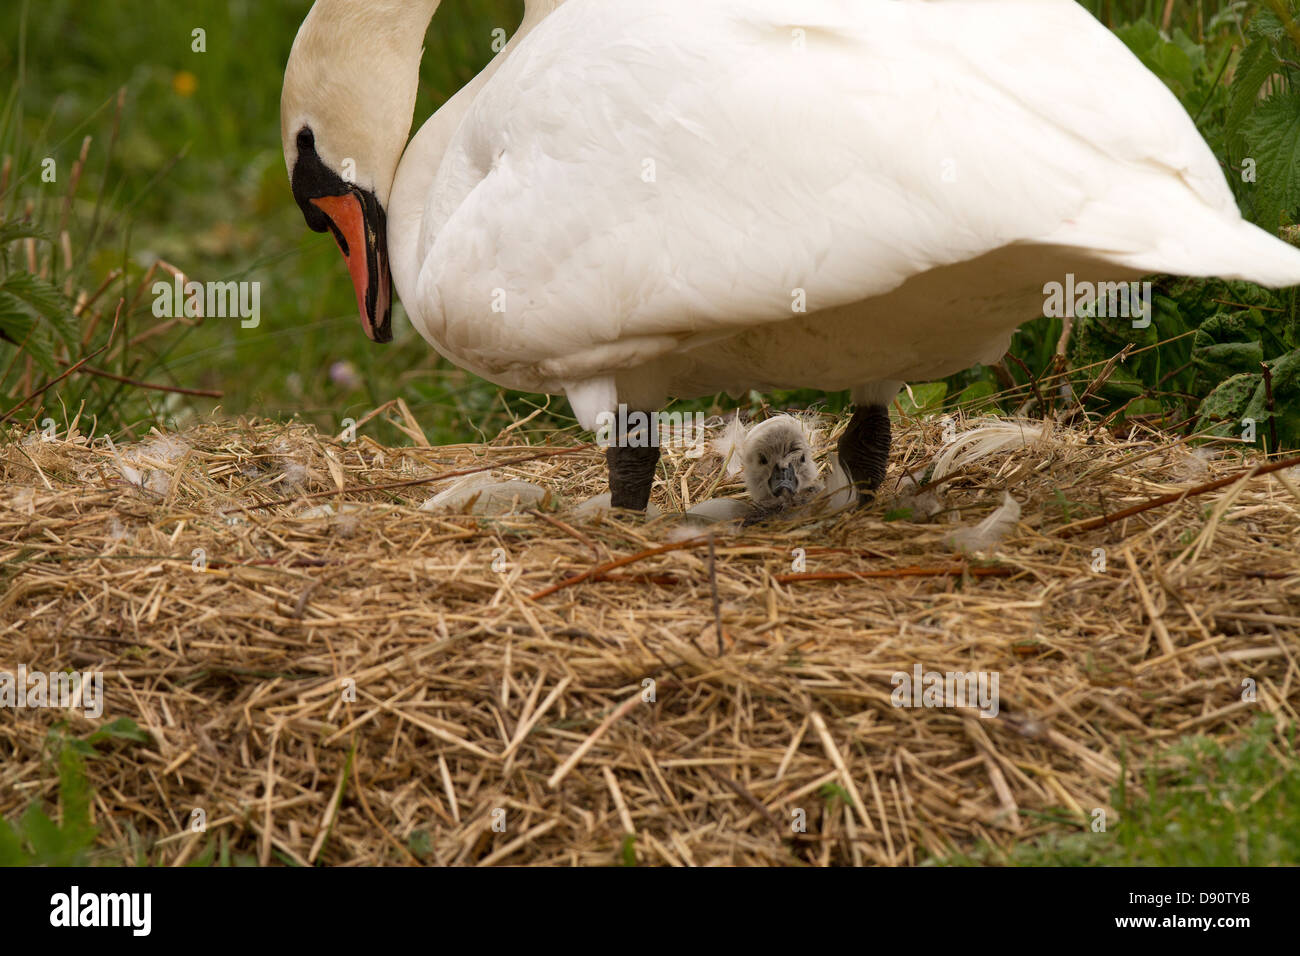 Cygnet just hatched - Stock Image